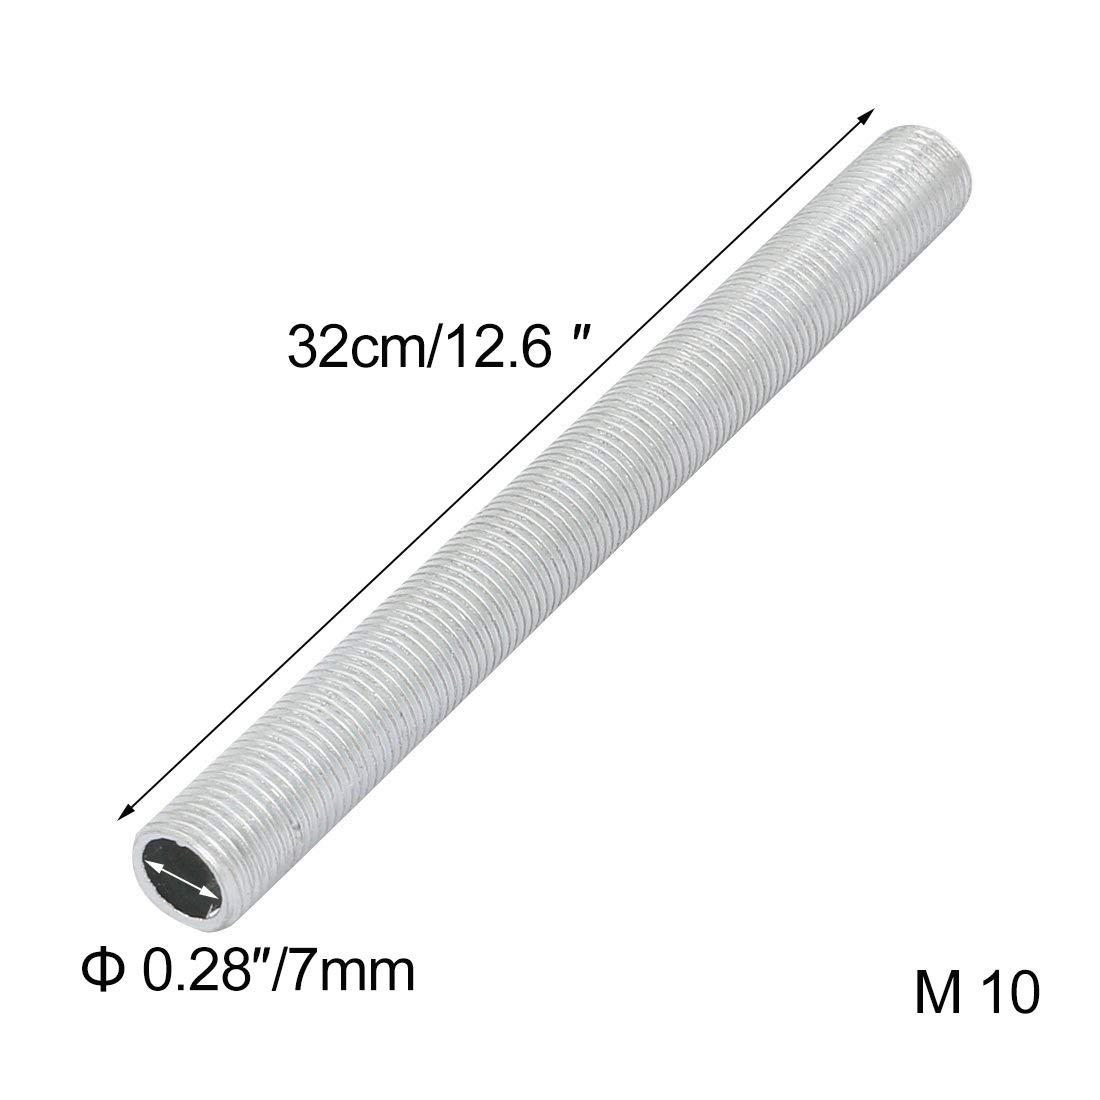 ANYE 5 Pcs M10 Full Threaded Lamp Nipple Straight 12.6''(L) Pass-Through Pipe Connector DIY PJ0021-32CMx5